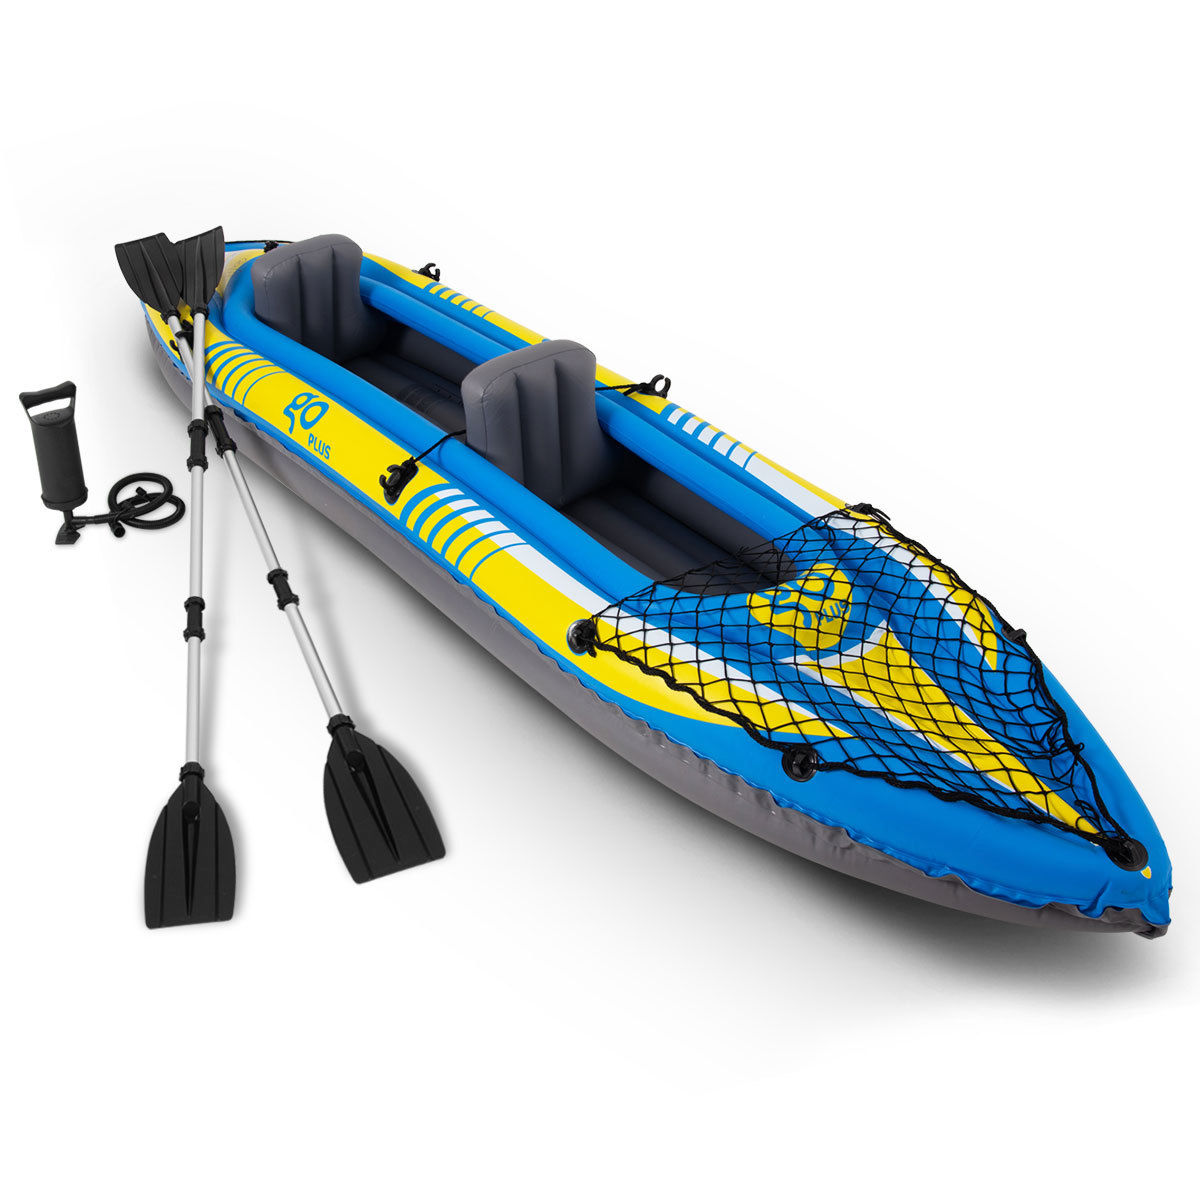 Goplus 11.5ft Goplus 2-Person Inflatable Canoe Boat Kayak W/ Pump Paddle Water Sport